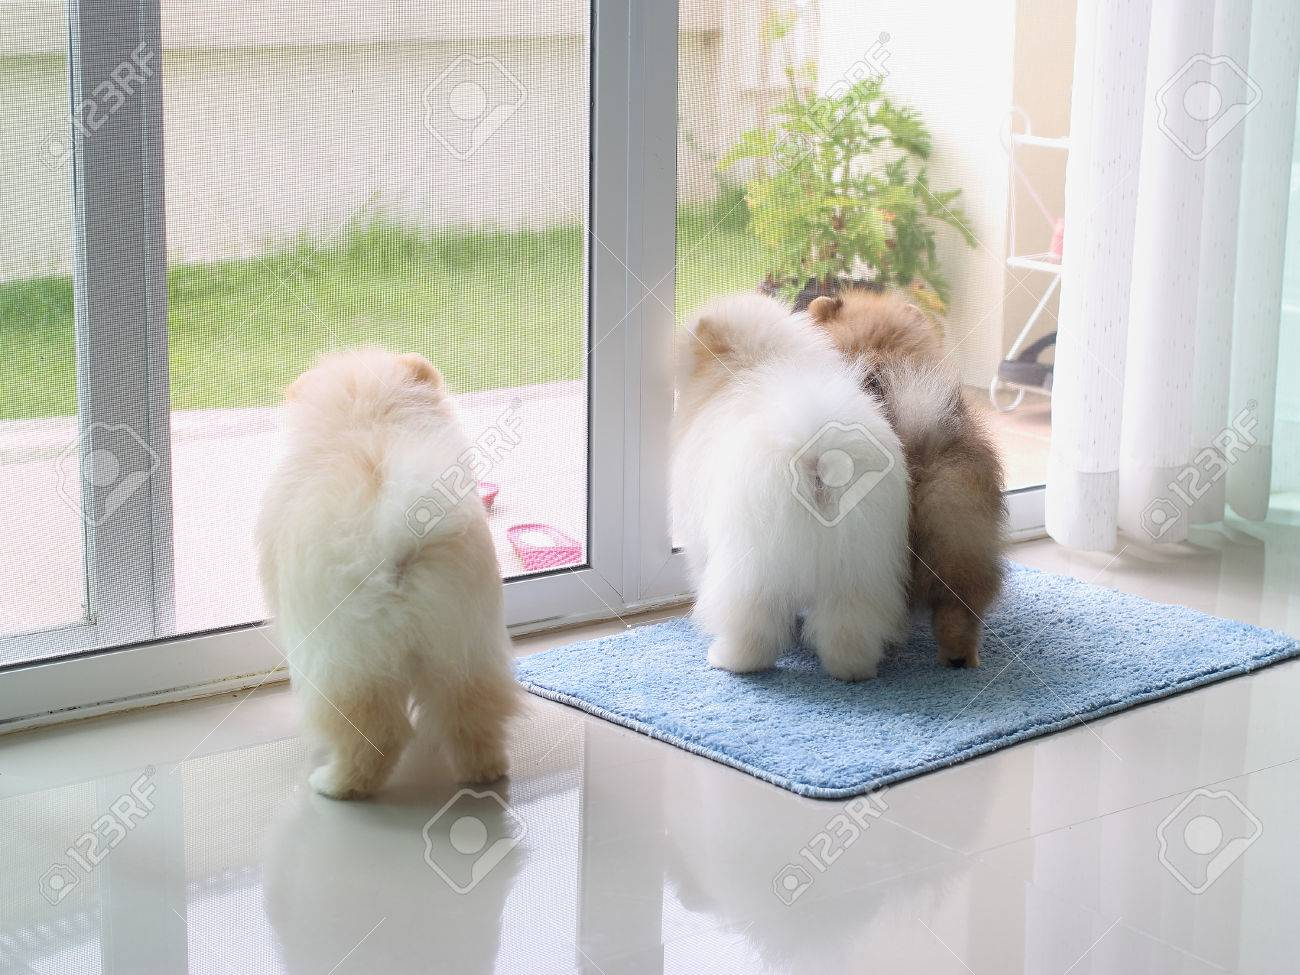 Three Pomeranian Puppy Dogs In Home Looking For The Owner Pets